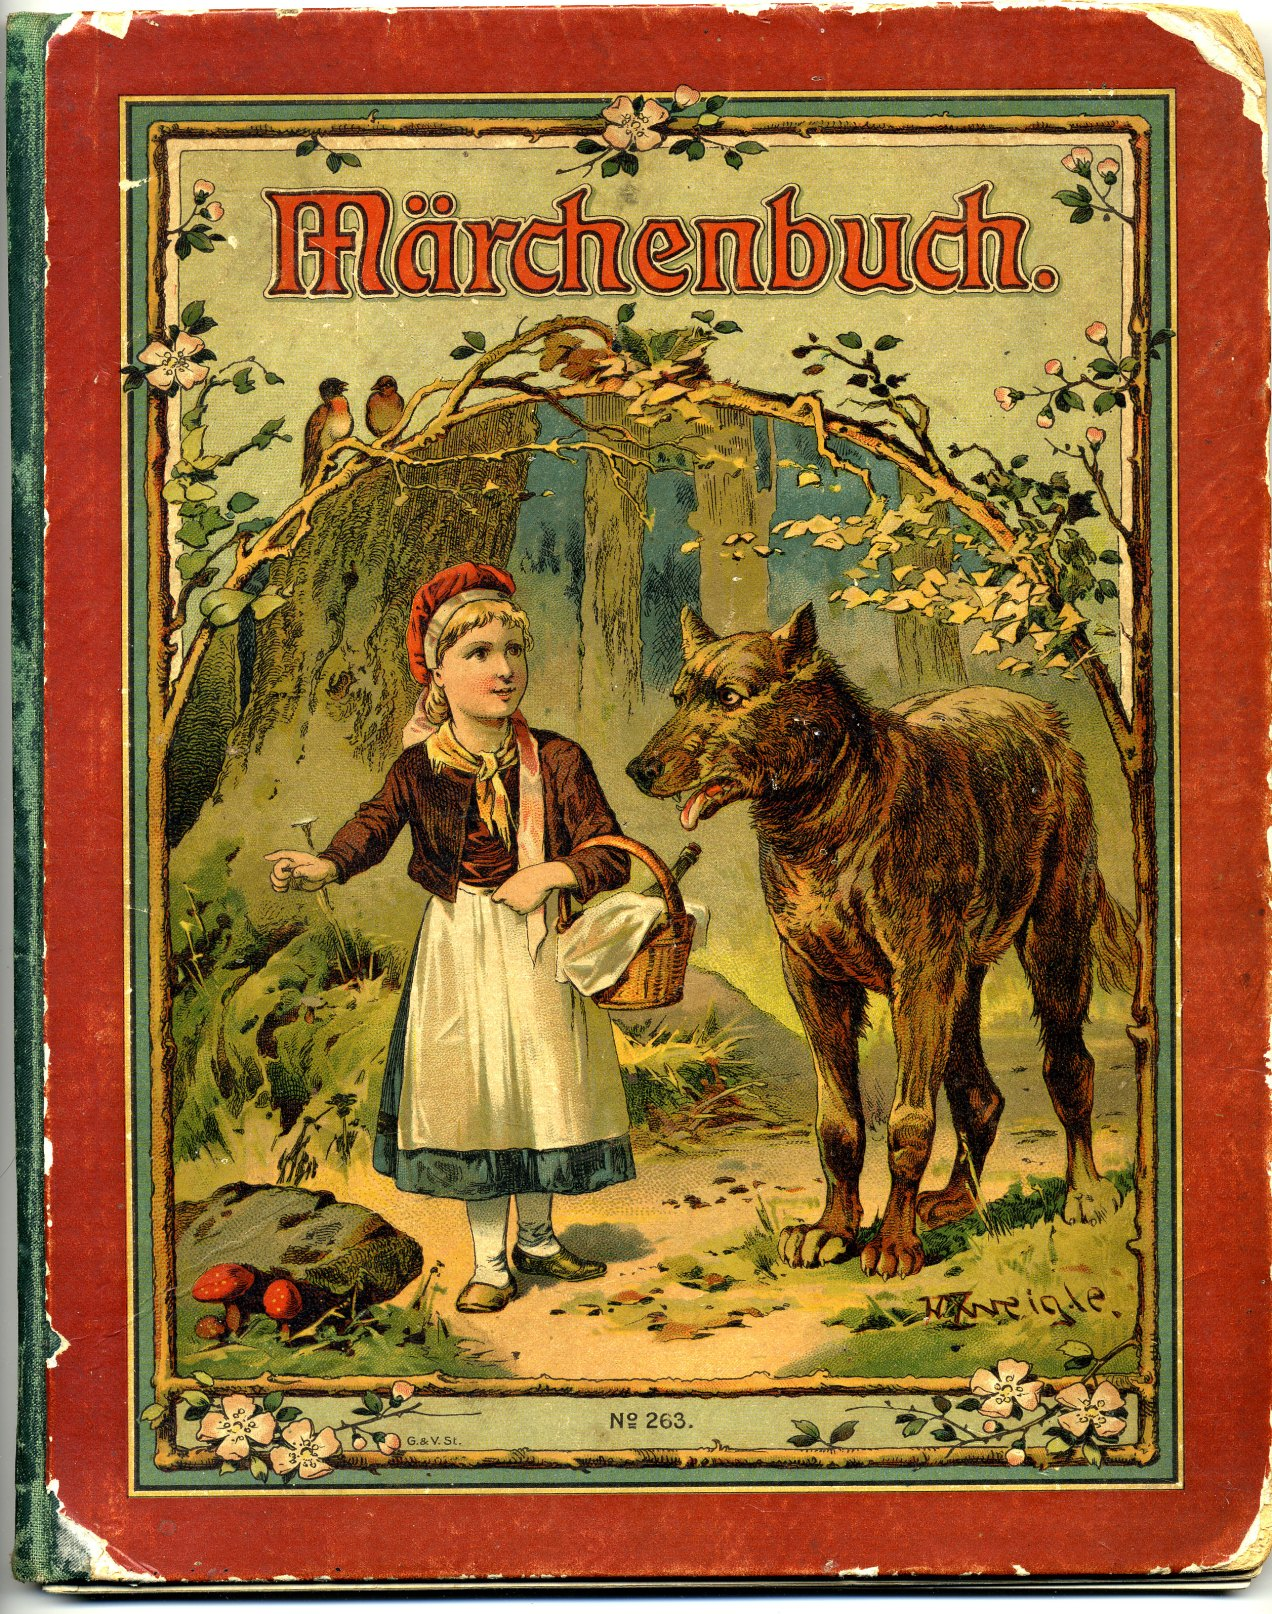 literary theory in hansel and gretel by brothers grimm With particular attention to the brothers grimm fairy tales which have  wicked  witch in disguise, has seduced hansel and gretel into a trap with her  feminist  literary criticism proposed renaming the story 'snow white and her wicked.